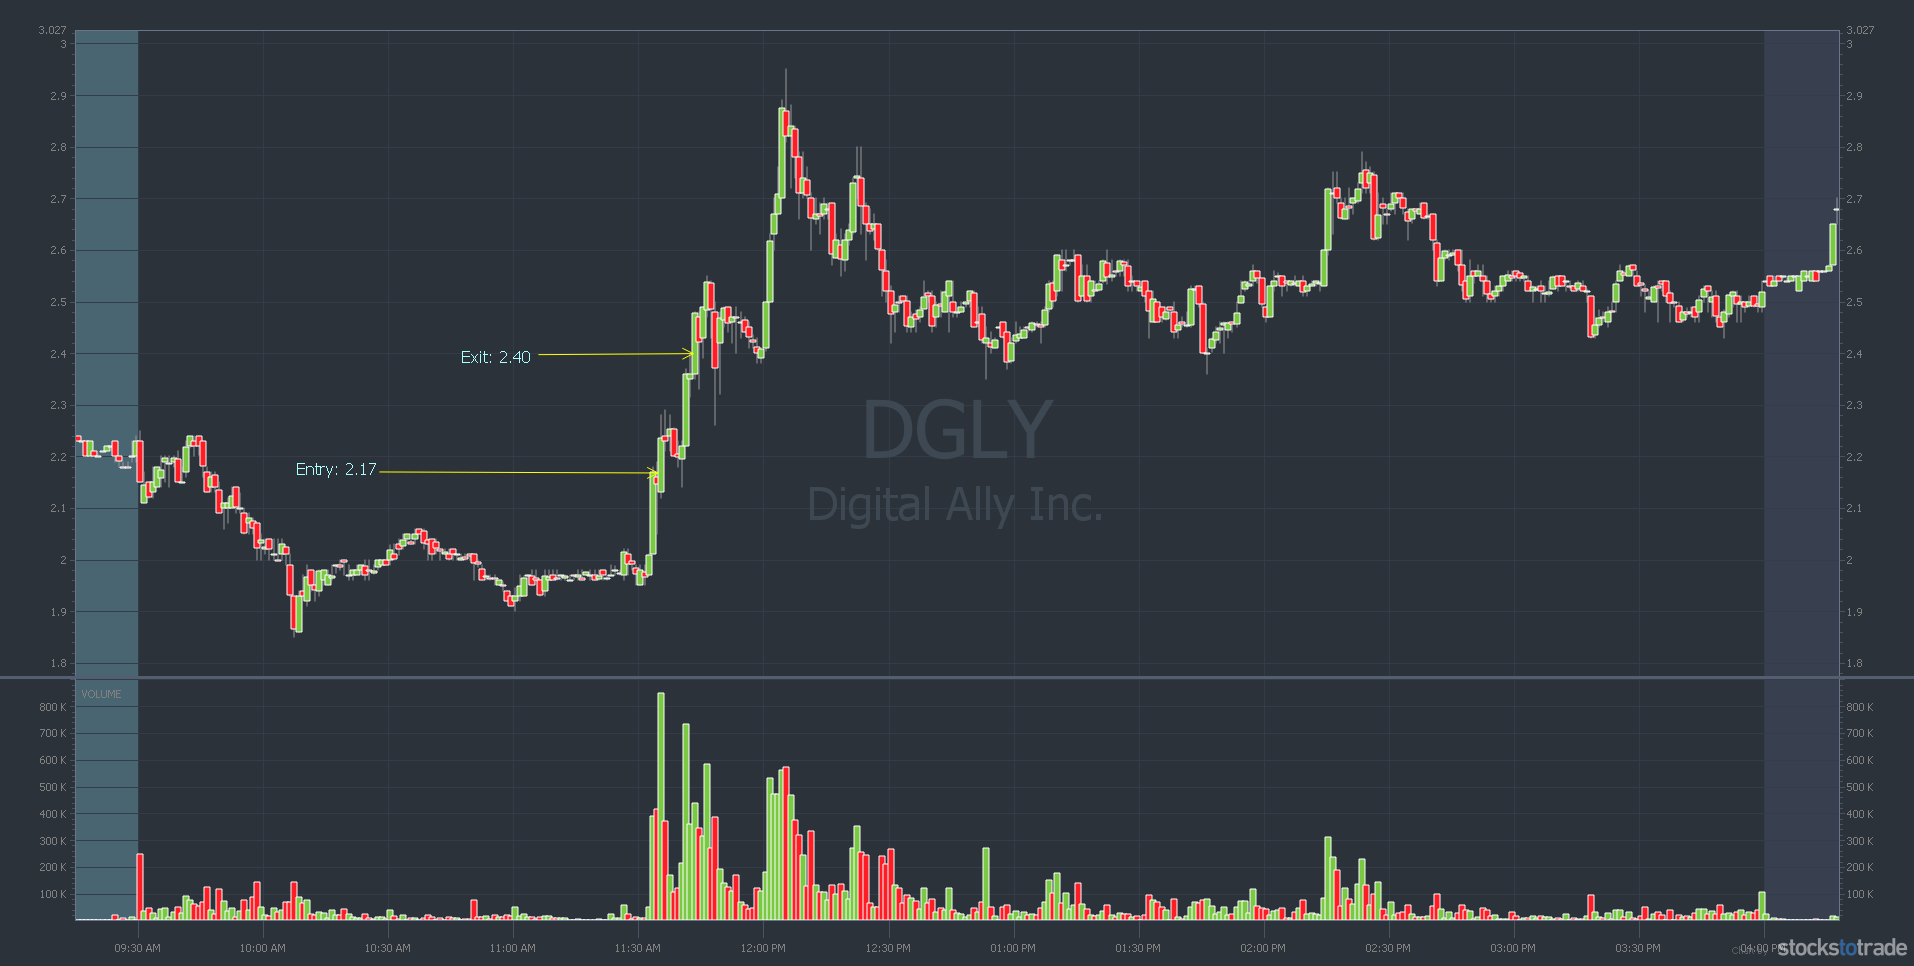 DGLY stock chart